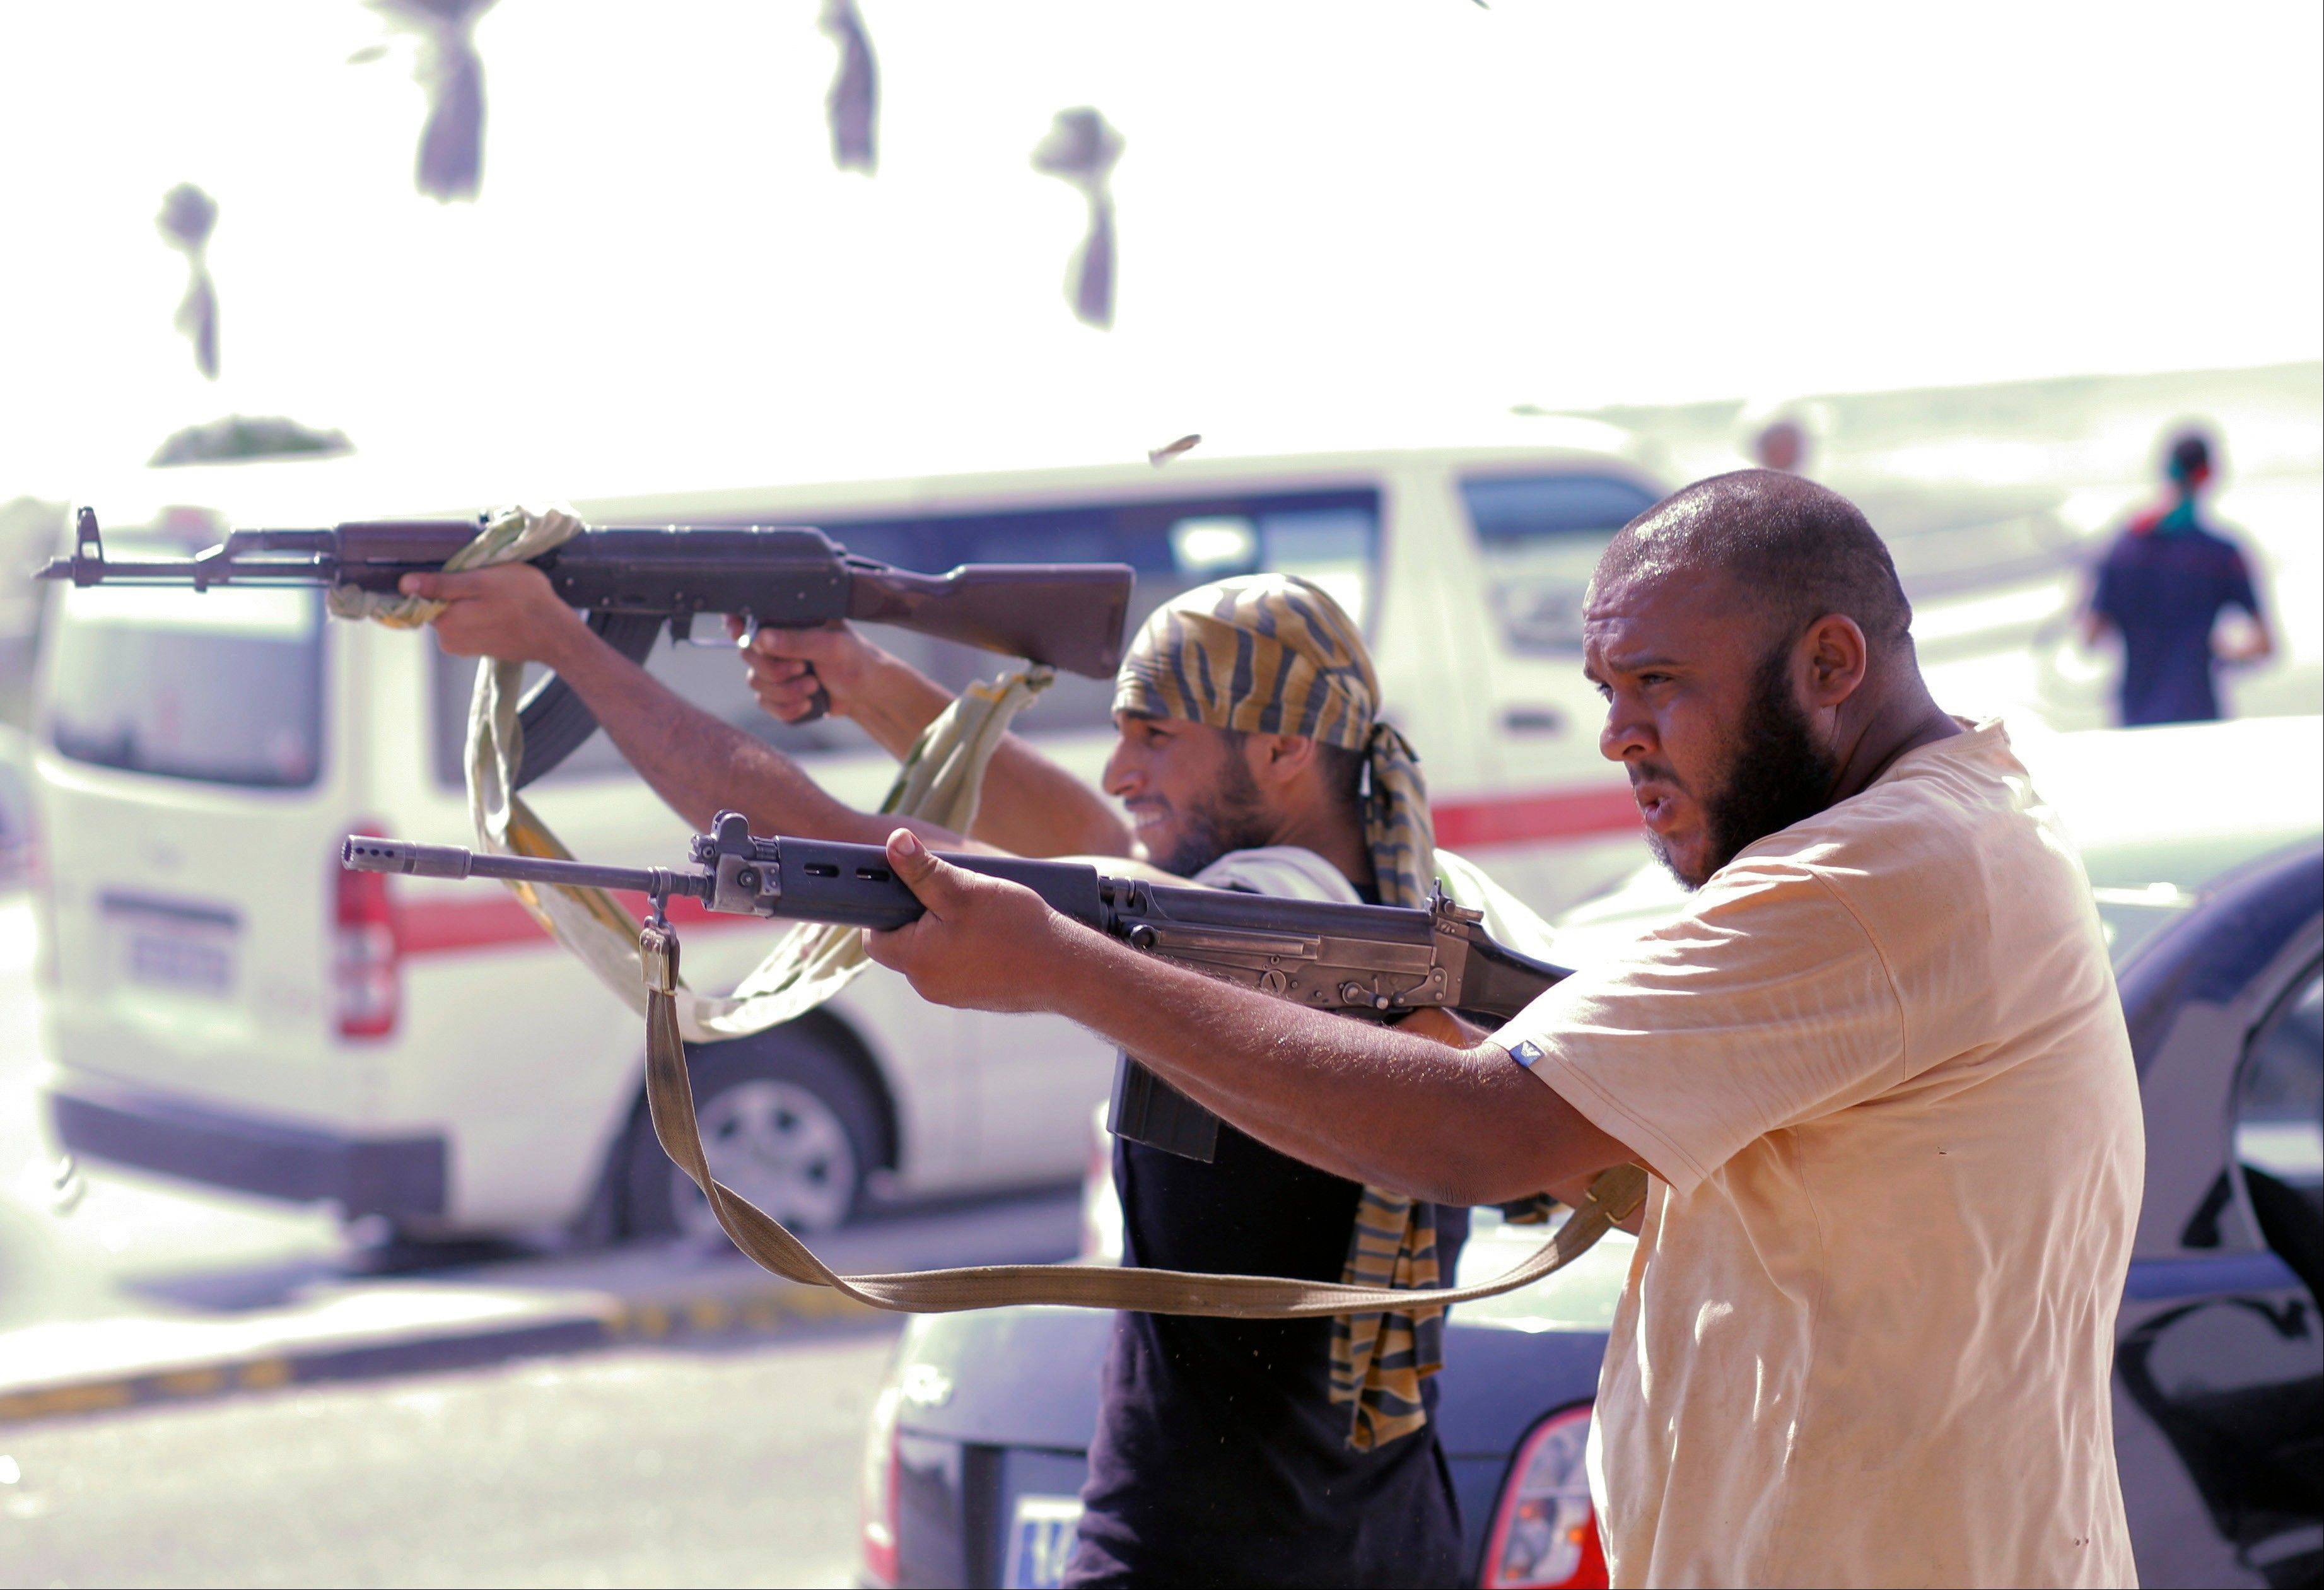 Libyan rebel fighters shoot towards pro-Gadhafi forces during fighting in downtown Tripoli, LIbya, Monday, Aug. 22, 2011.